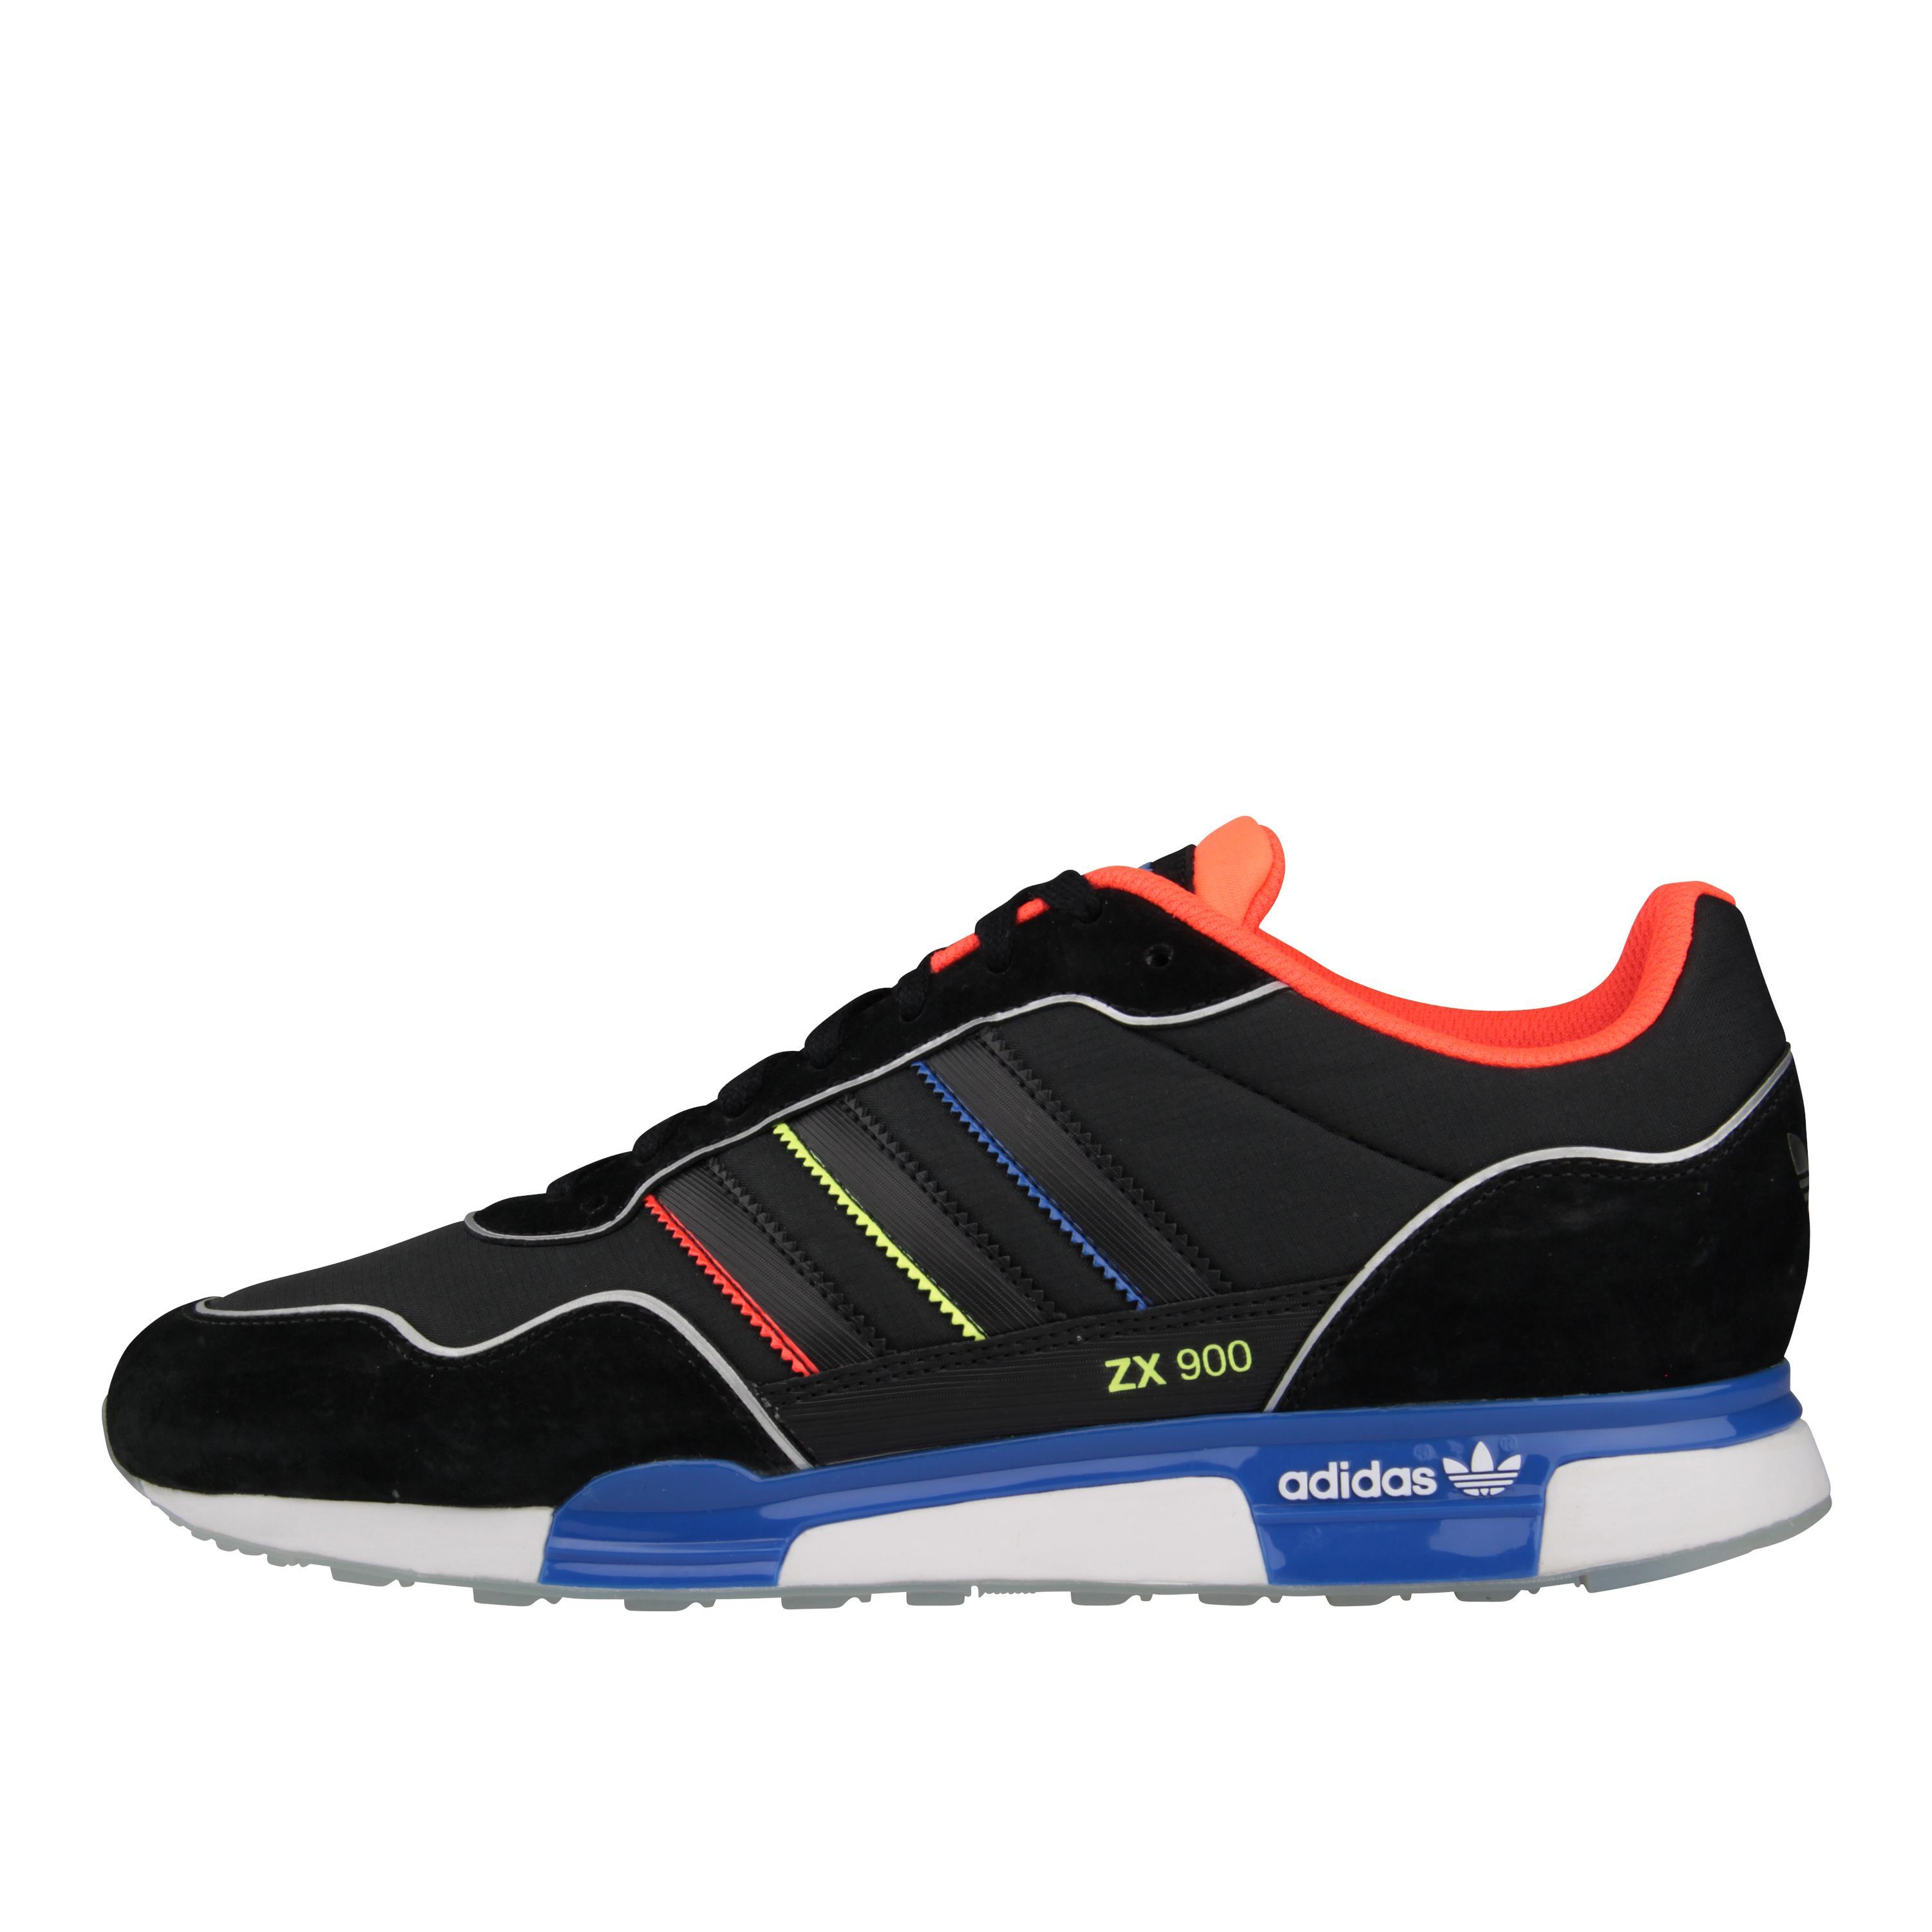 buy cheap online adidas zx 900 red fine shoes discount. Black Bedroom Furniture Sets. Home Design Ideas